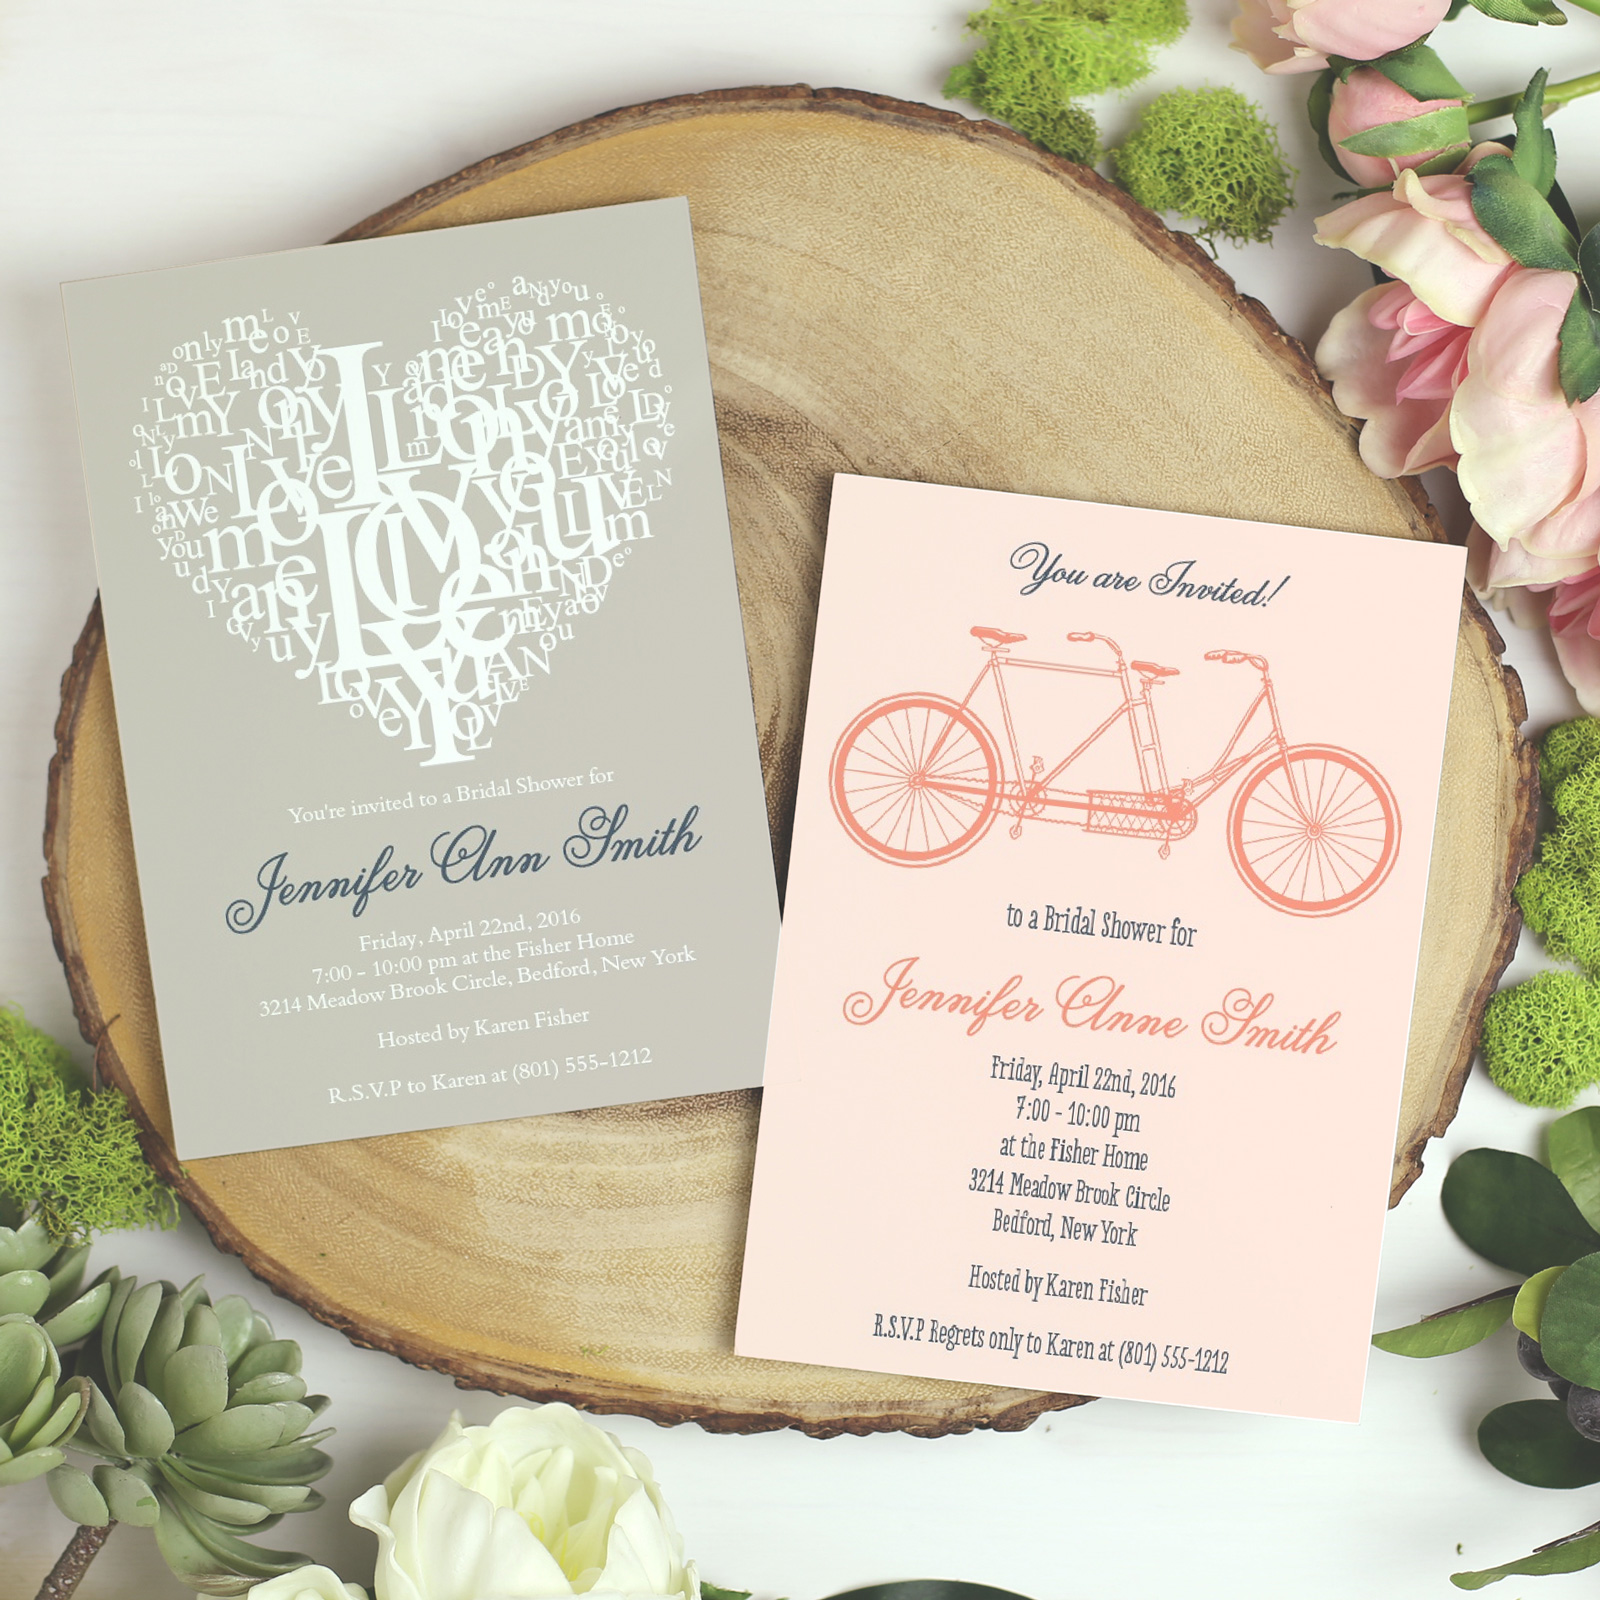 Basic Invite, Bridal Shower Invitations, Tips on Creating the Perfect Invitations for All of Your Wedding Festivities